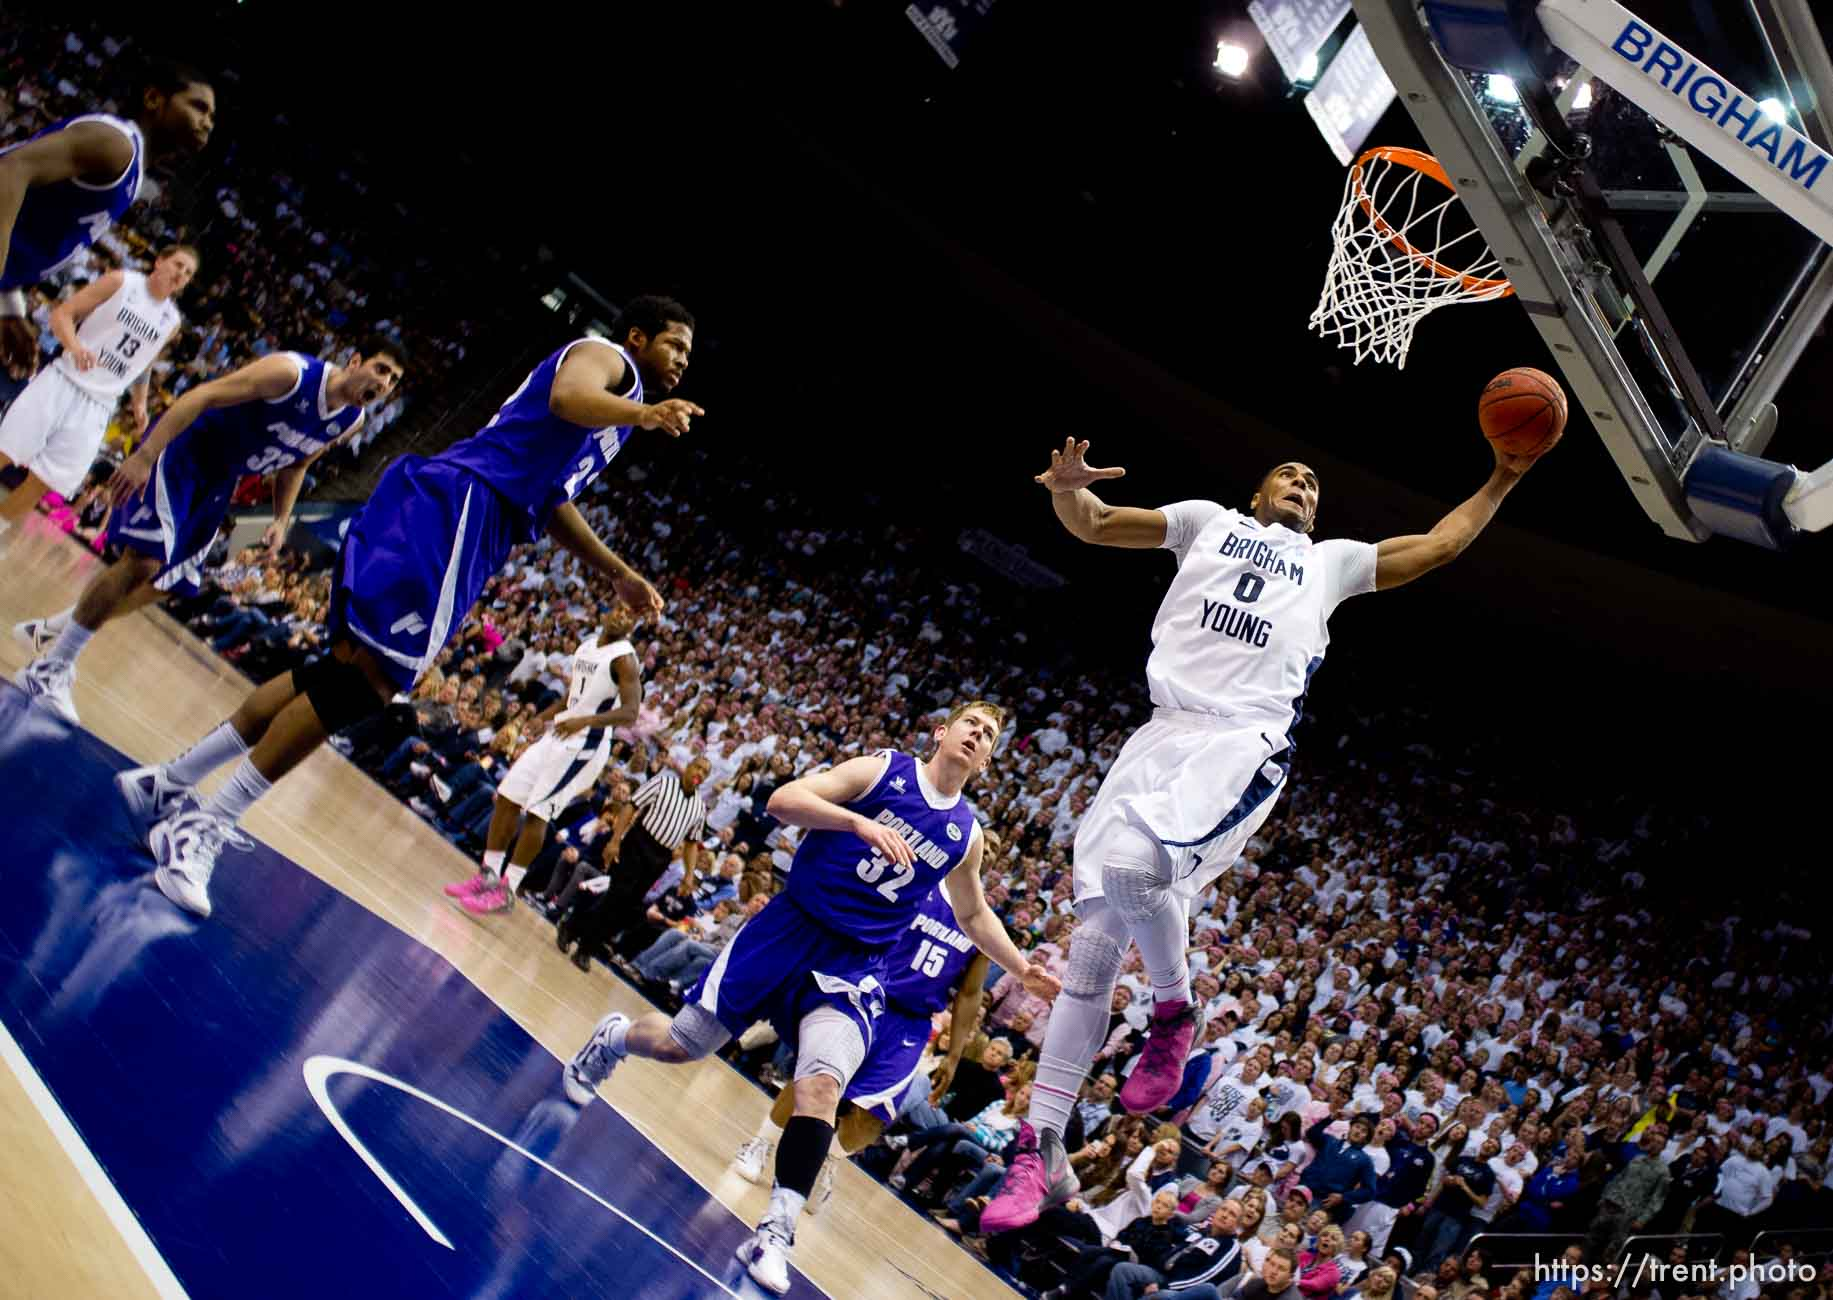 Trent Nelson | The Salt Lake Tribune BYU forward Brandon Davies (0) dunks the ball. BYU vs. Portland, college basketball Saturday, February 25, 2012 in Provo, Utah.